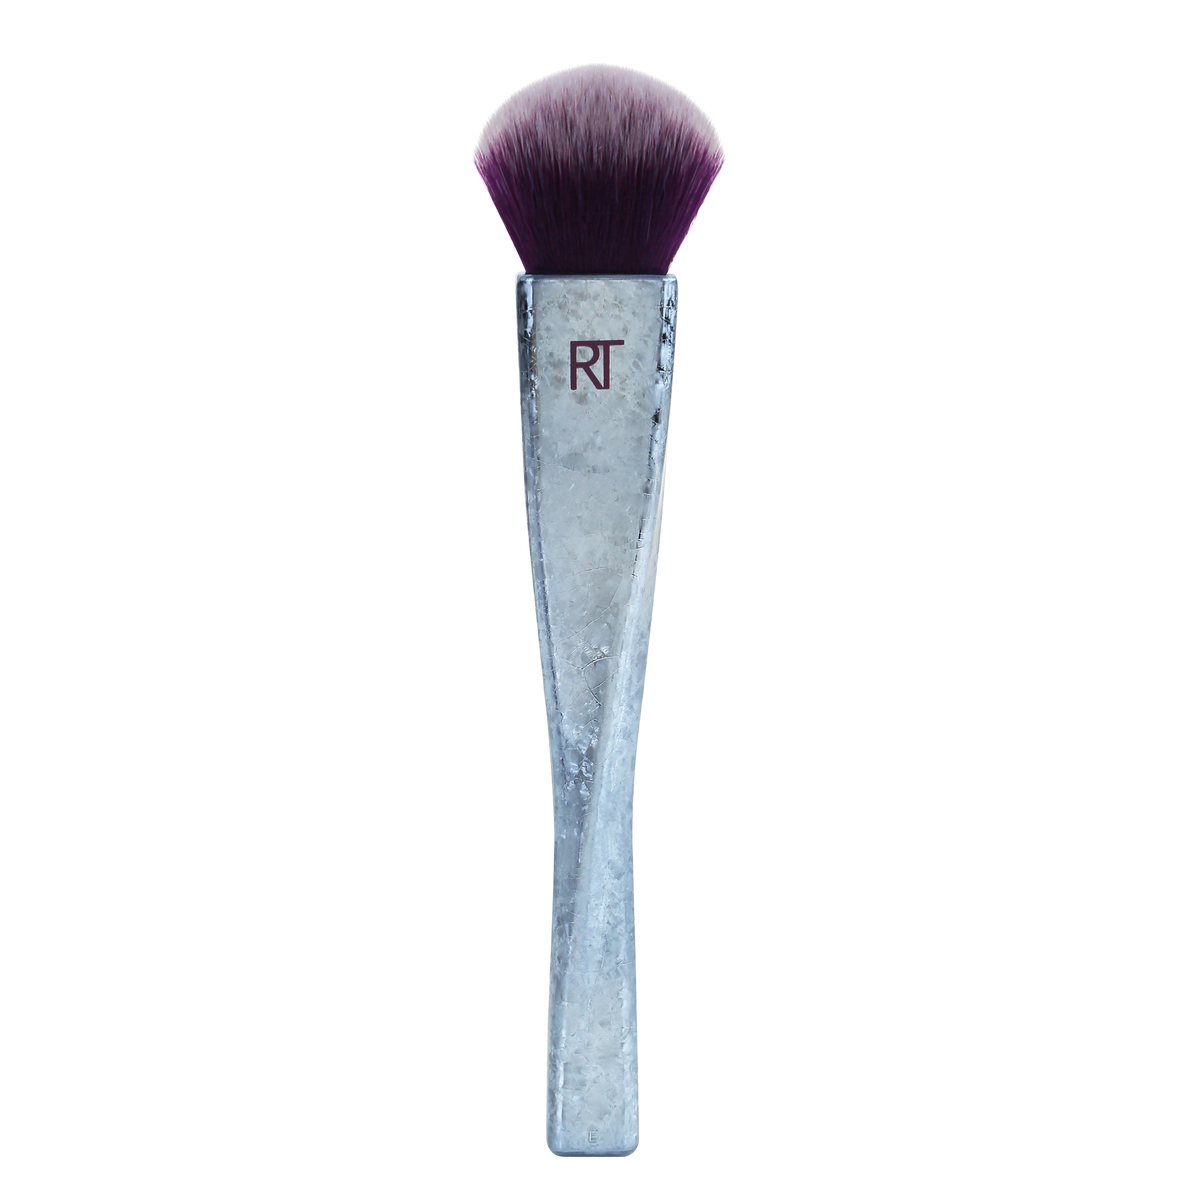 BRUSH CRUSH™ Vol. II 302 Četkica Za Rumenilo